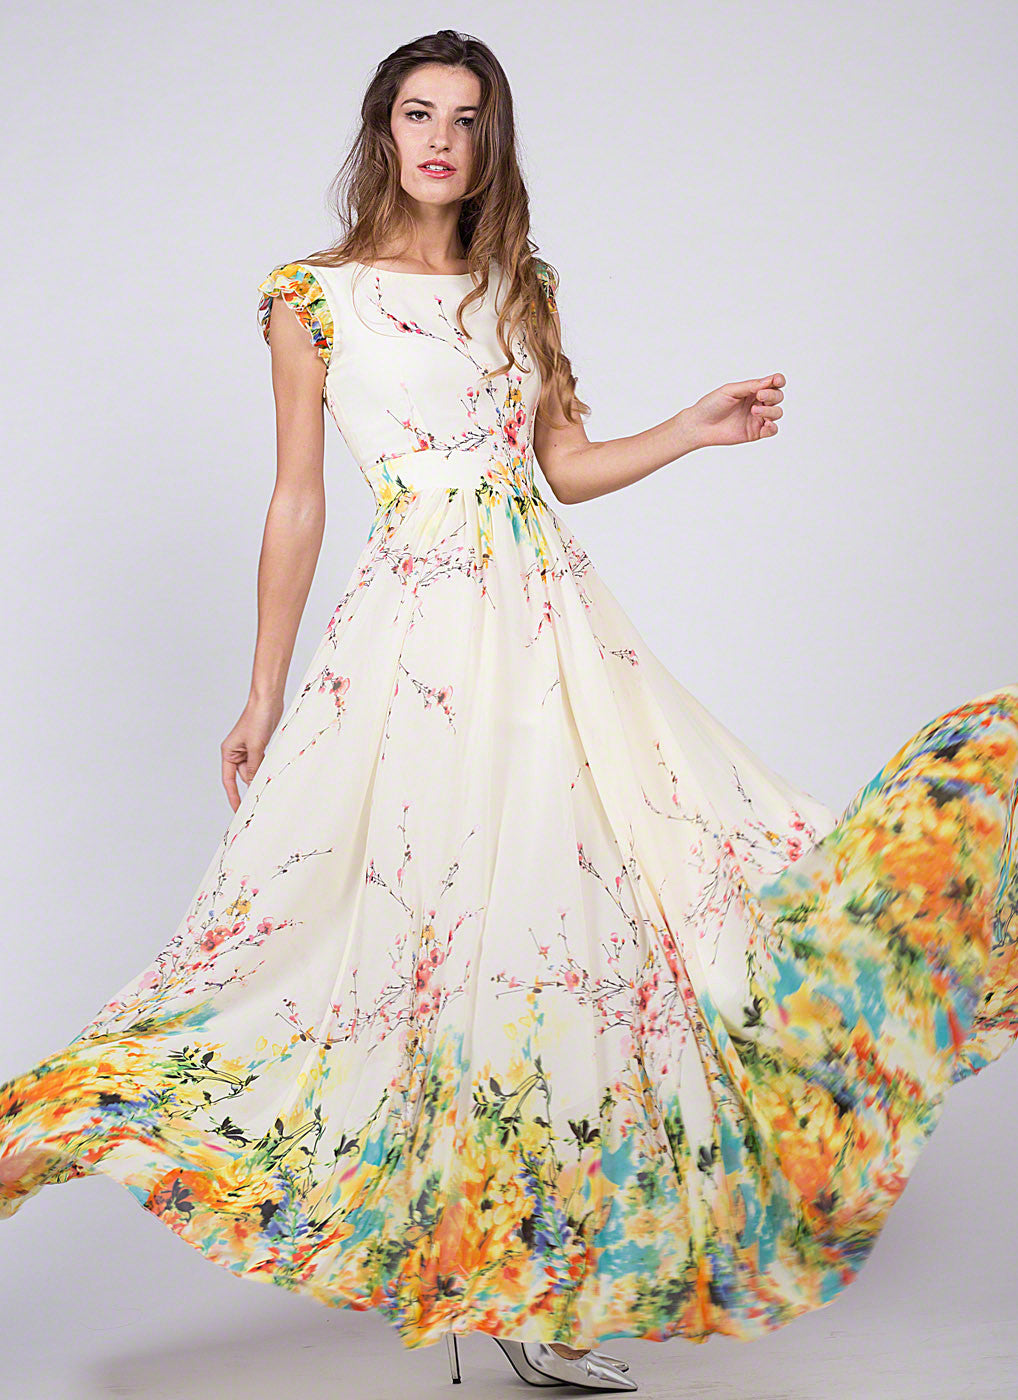 Artsy Yellow Chiffon Floral Prom Dress with Rainbow Floral ...